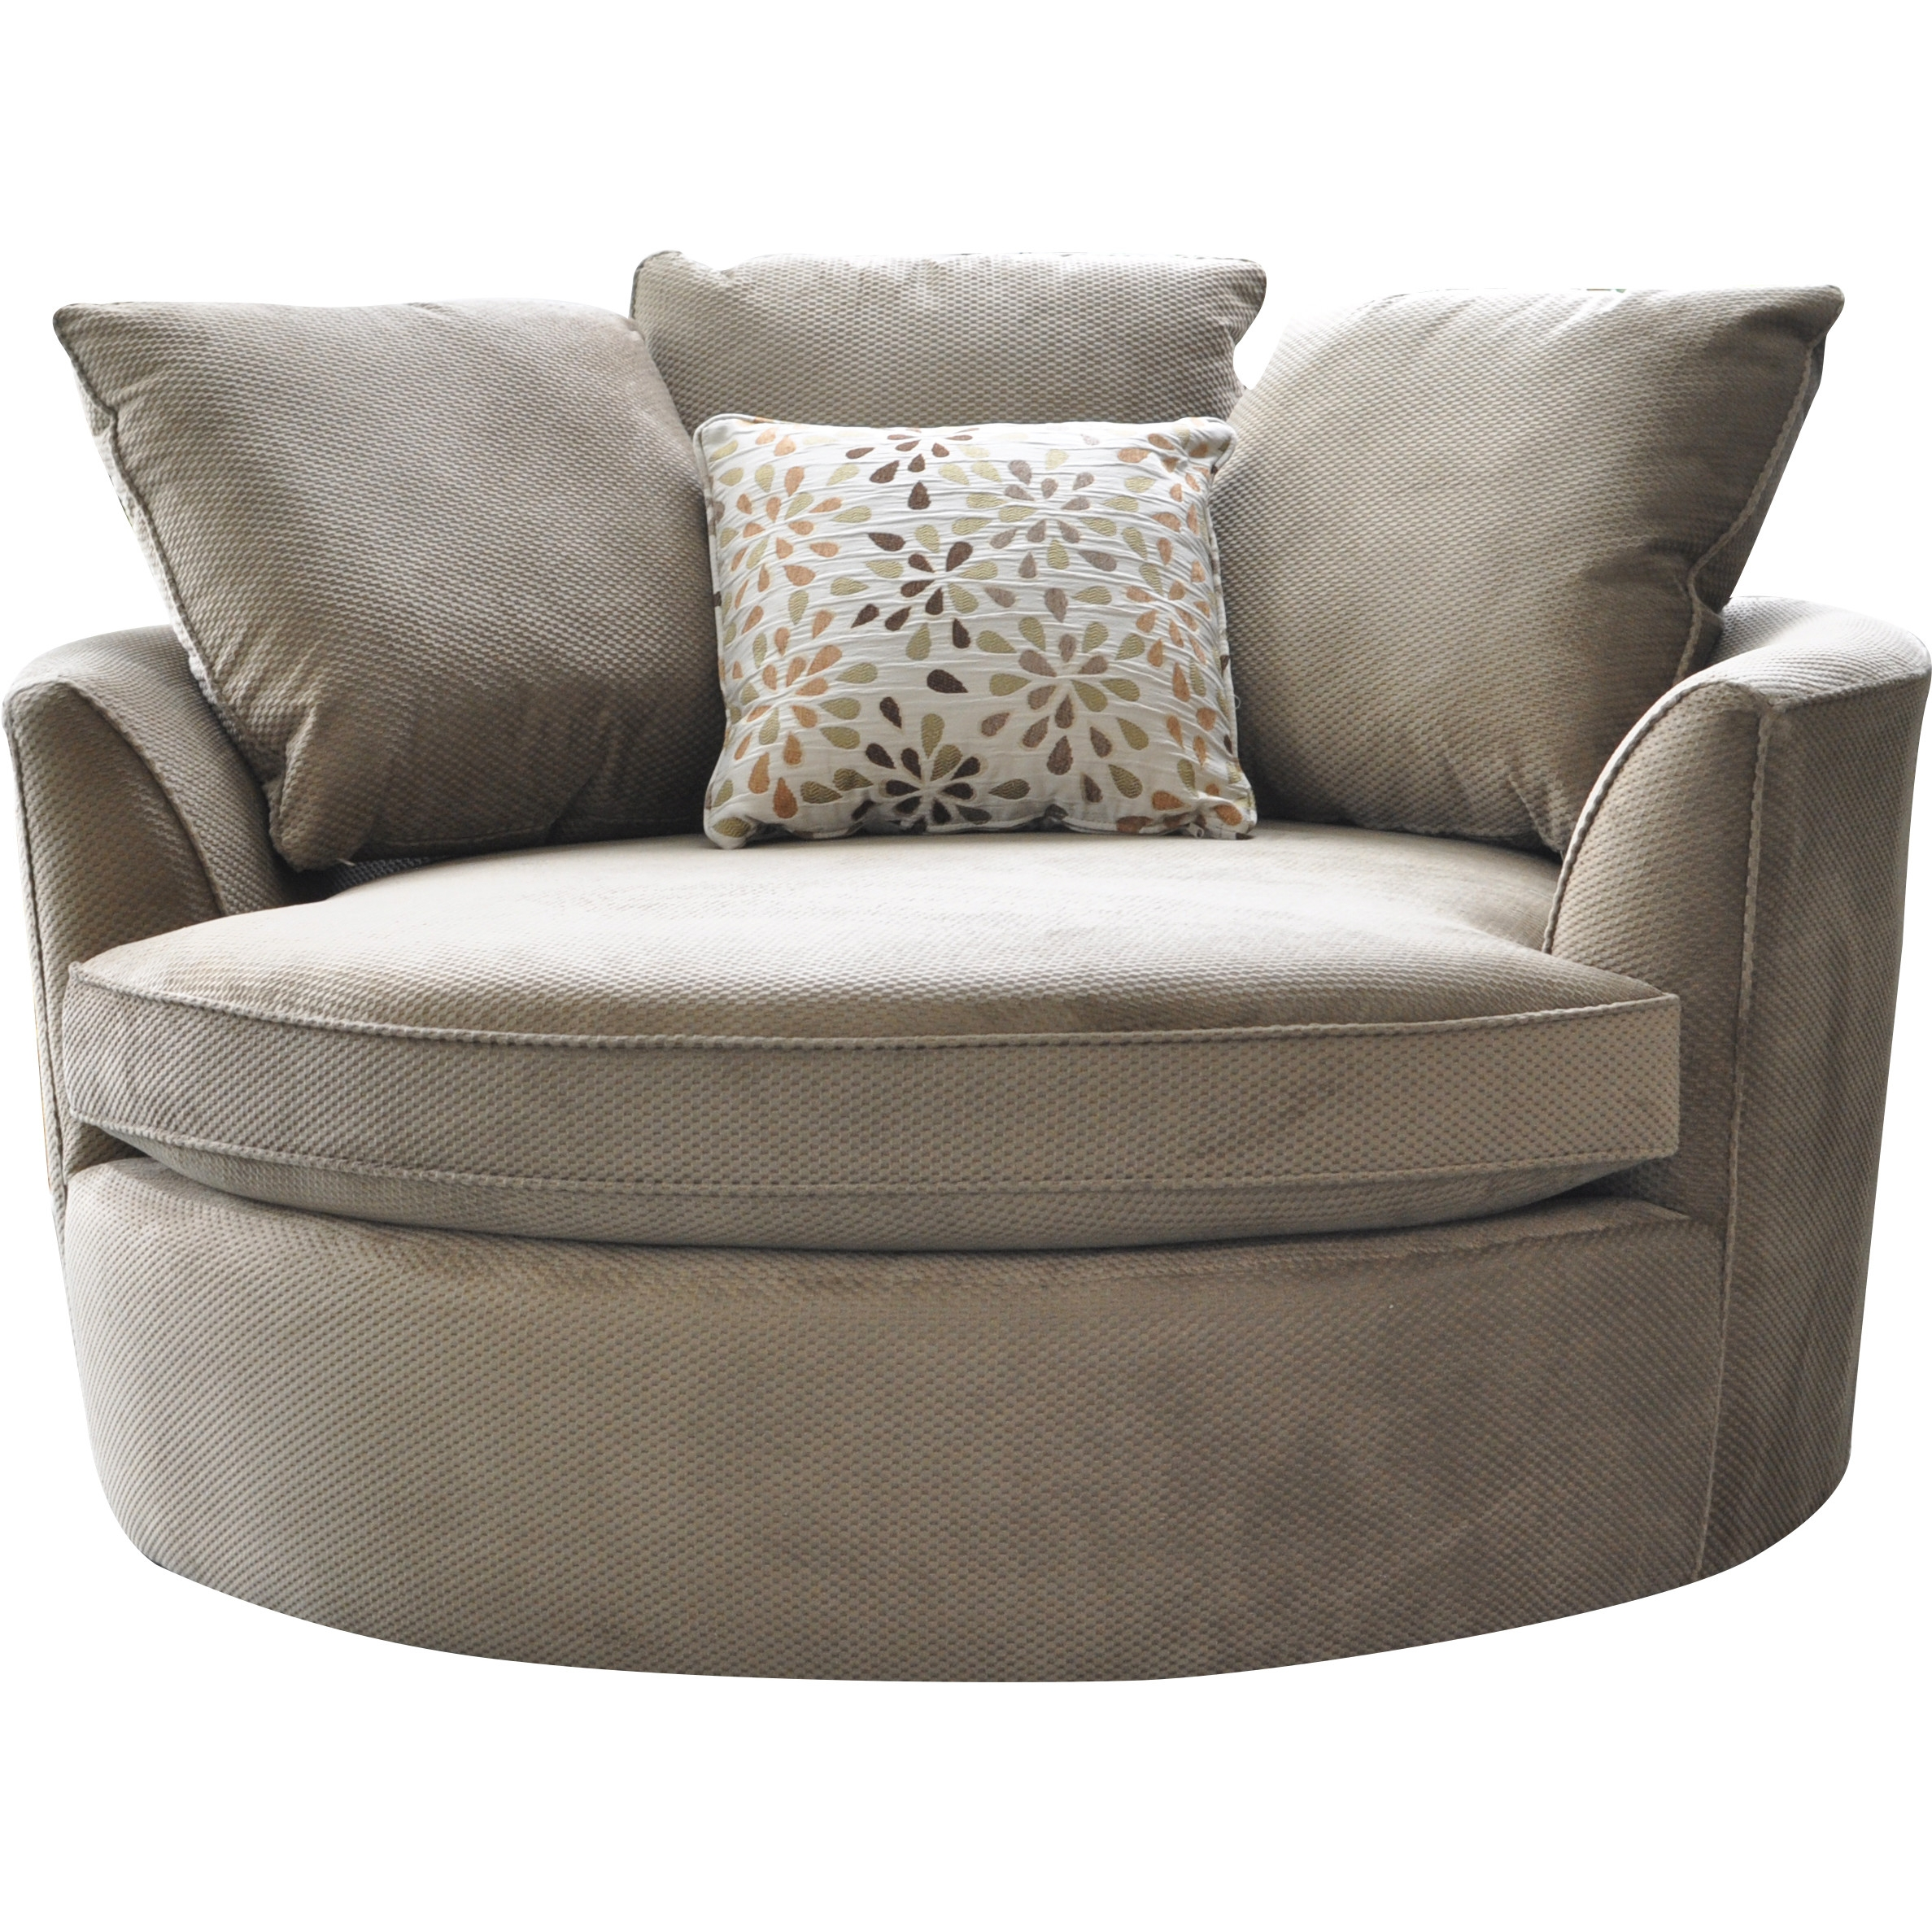 Cuddler Swivel Sofa Chair Roselawnlutheran For Cuddler Swivel Sofa Chairs (Image 4 of 15)